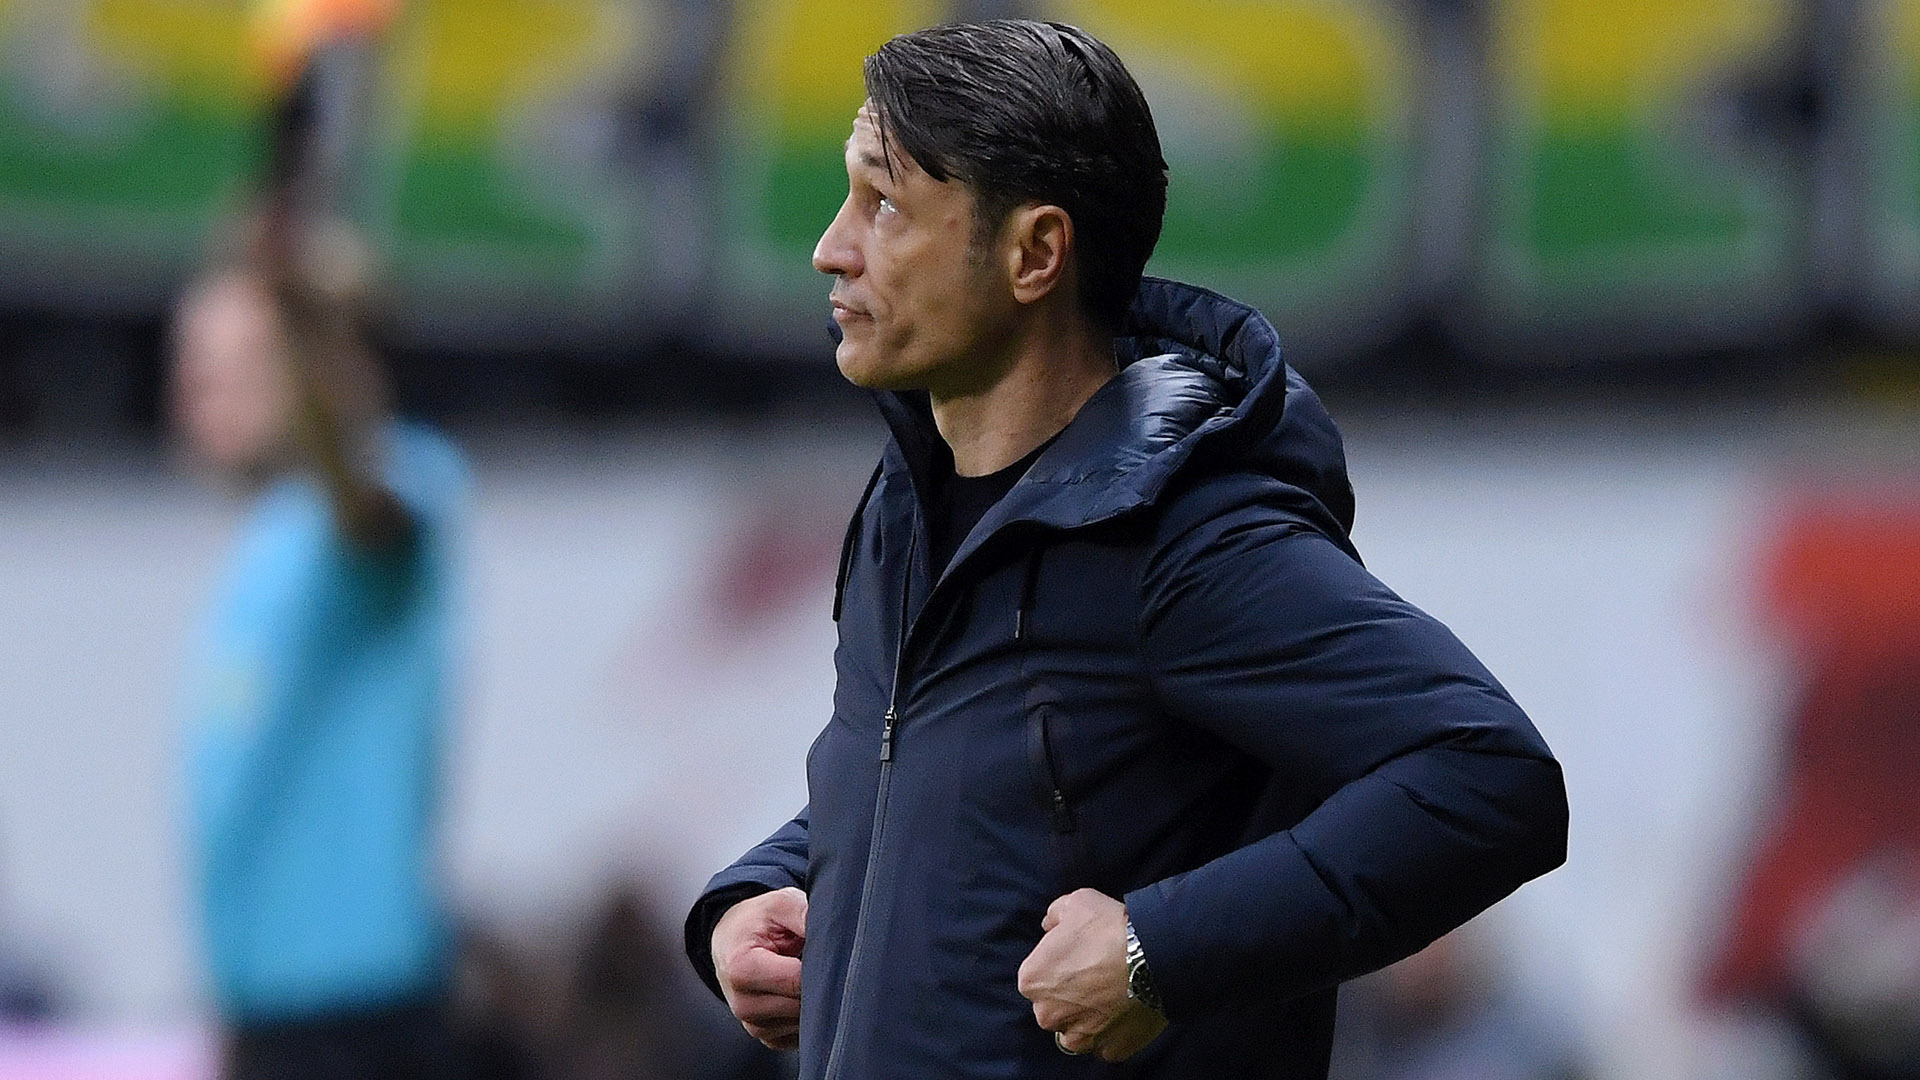 Niko Kovac sacked as Bayern Munich head coach